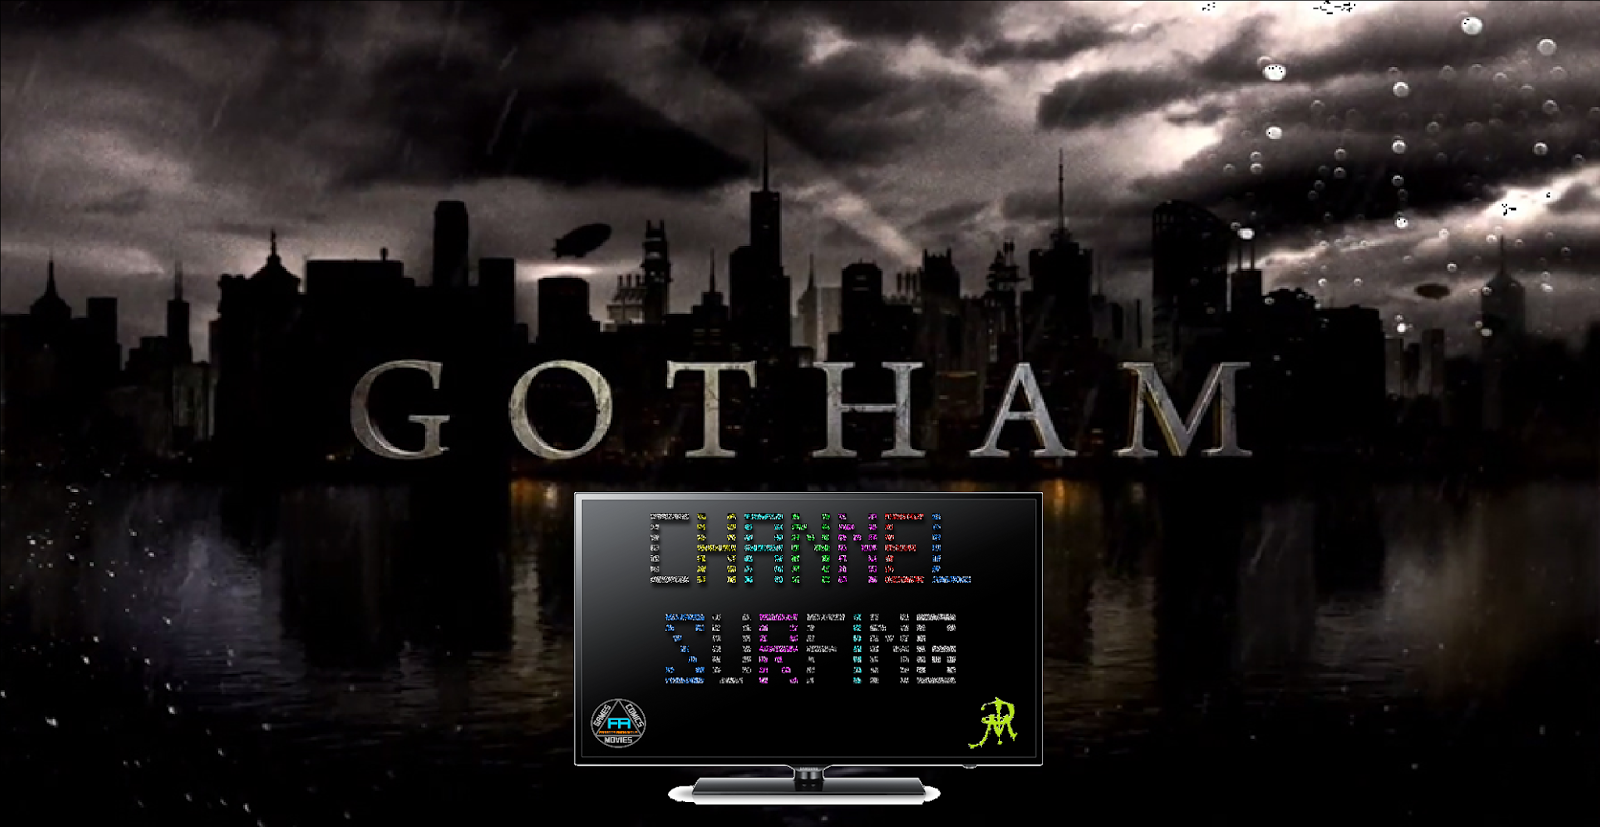 FOX's Gotham News, spoilers and rumors